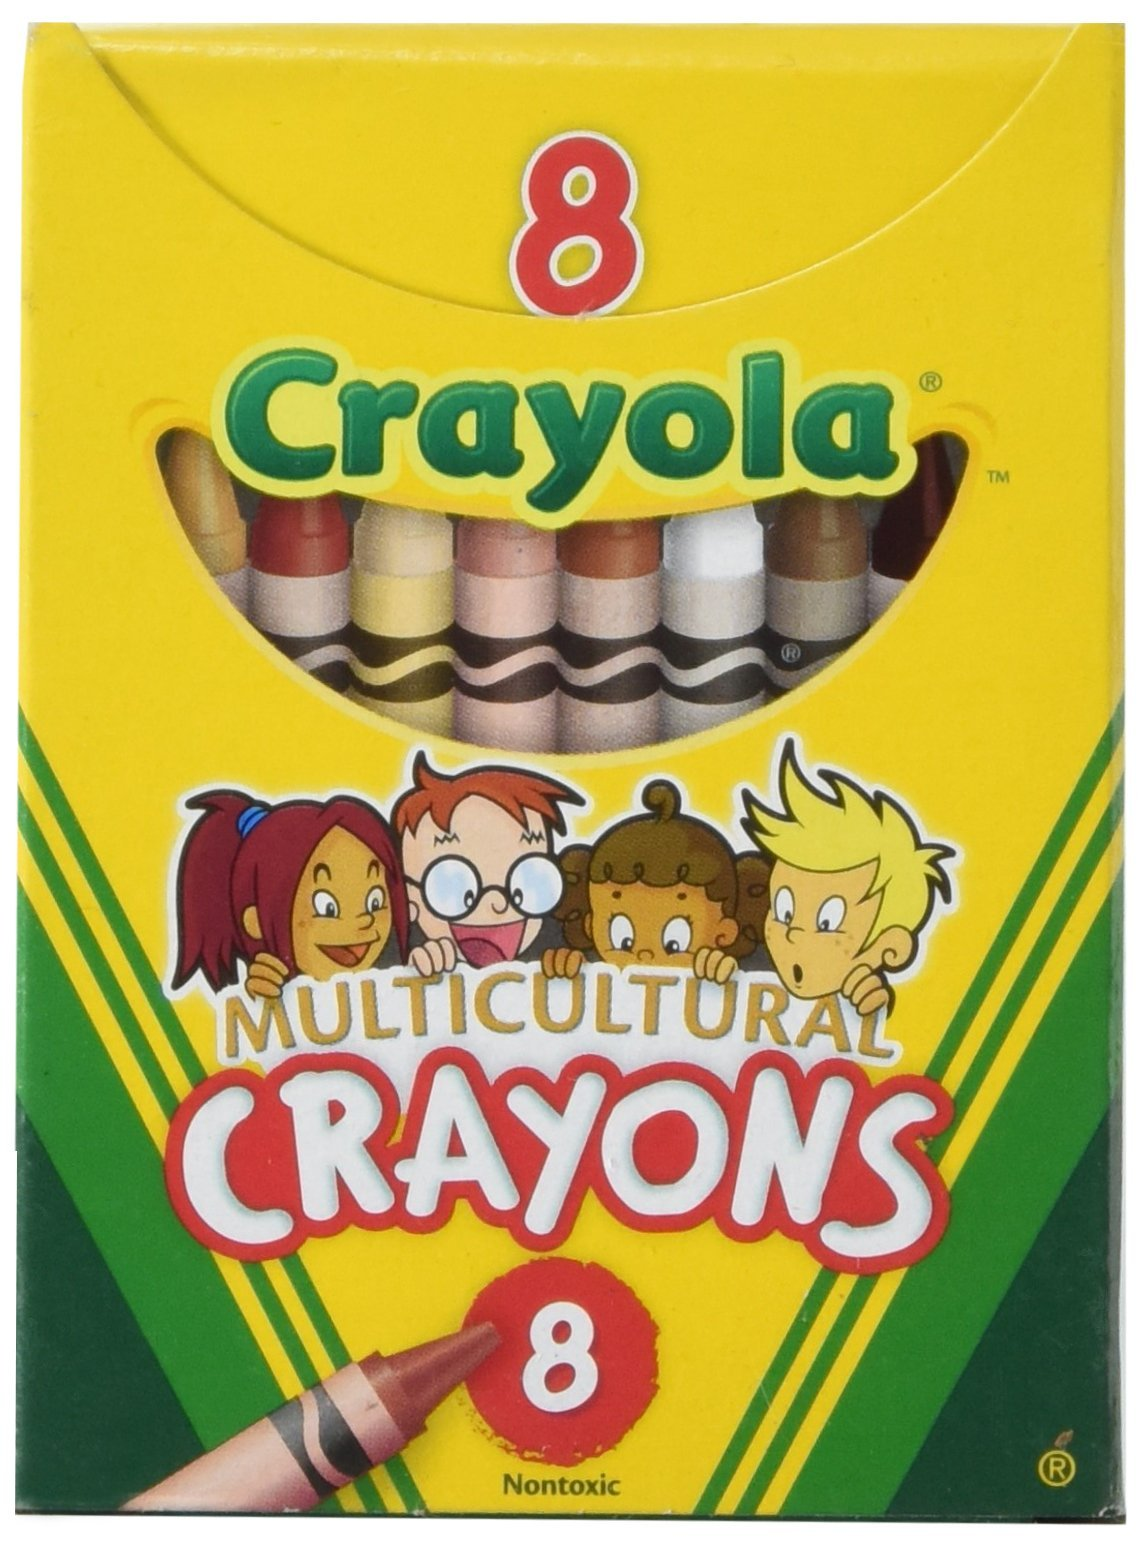 Binney & Smith Crayola(R) Multicultural Crayons, Assorted Specialty Colors, Box of 8 (52-008W)